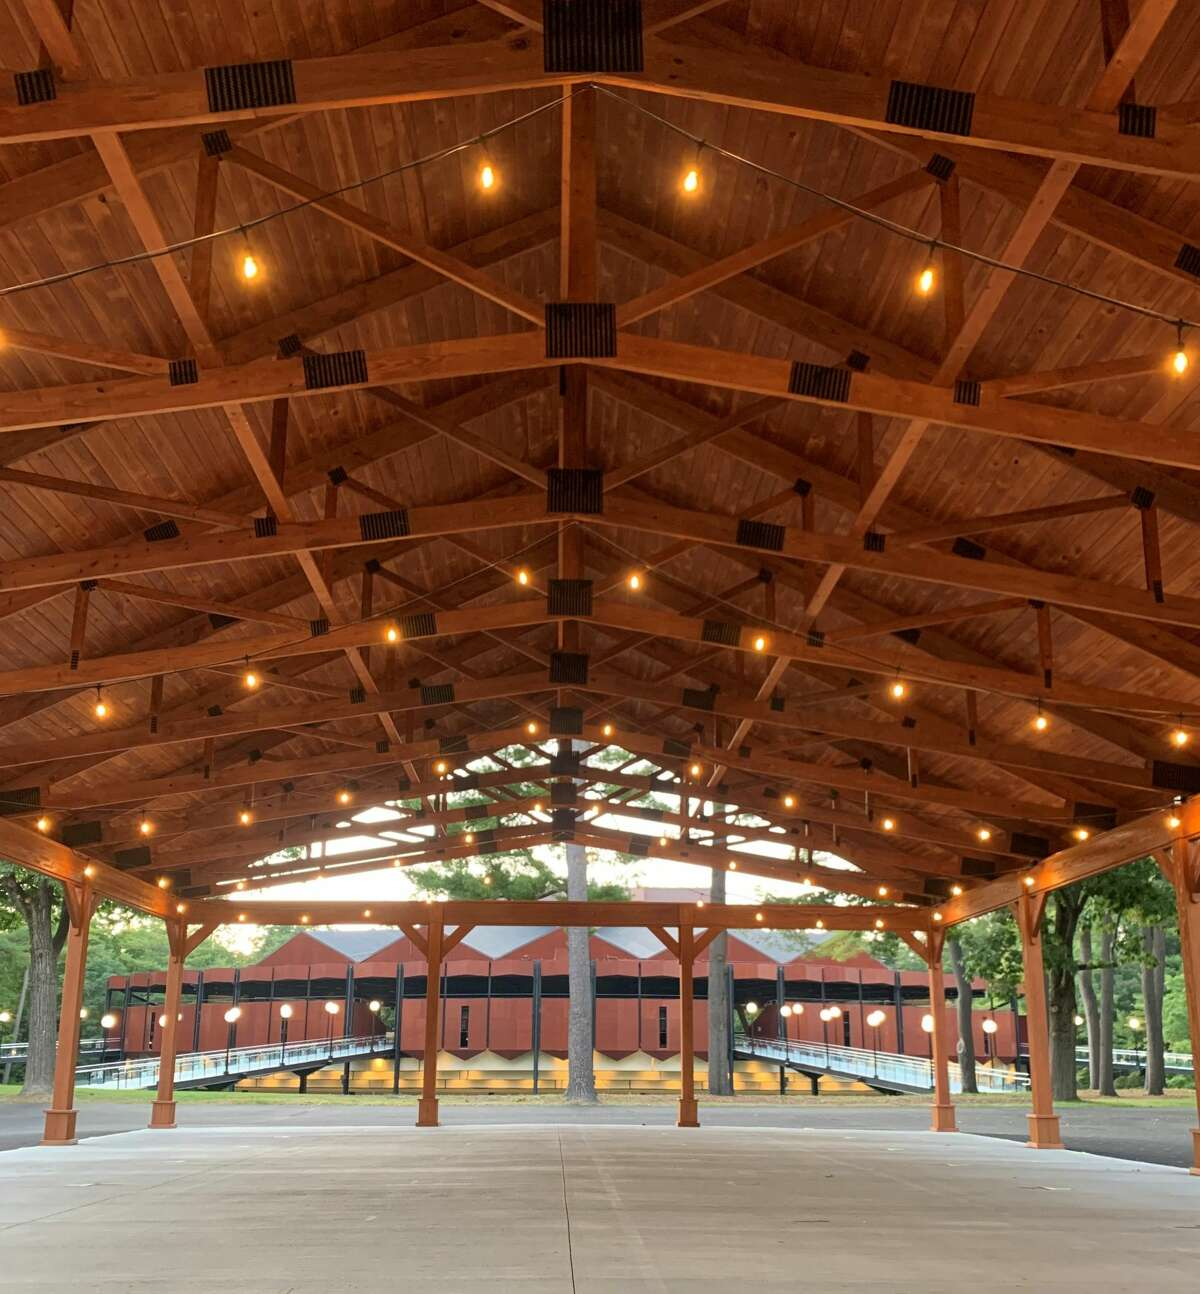 The new Julie Bonacio Family Pavilion is part of The Pines@SPAC, a large capital project that added new buildings and improved existing structures to the upper lawn at the Saratoga Performing Arts Center. (Provided photo.)